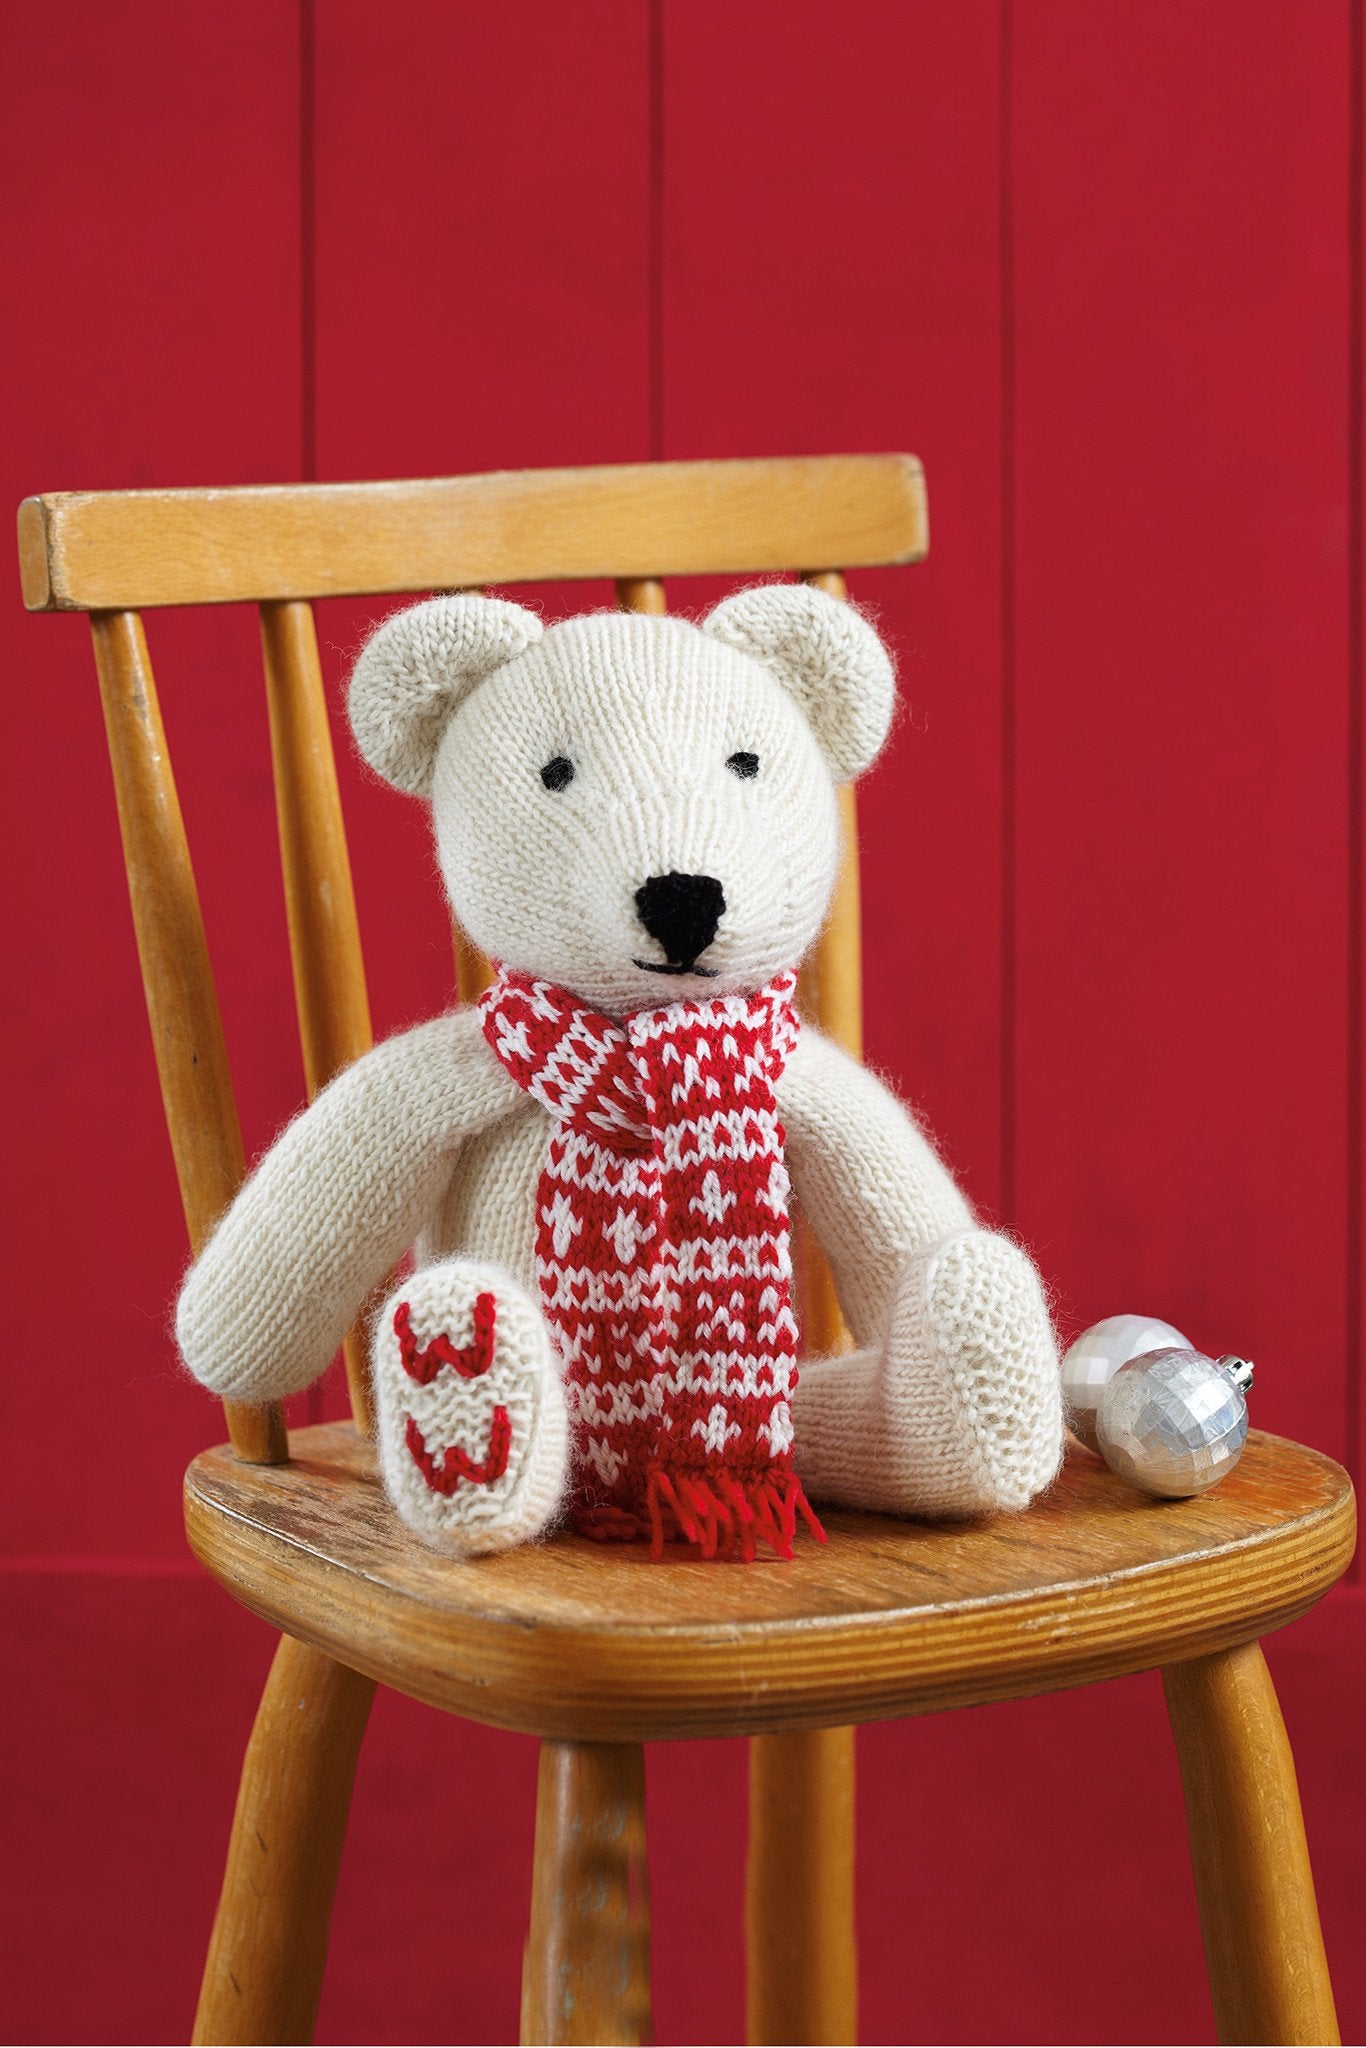 Teddy bear with scarf knitting pattern the knitting network teddy bear with scarf knitting pattern bankloansurffo Gallery